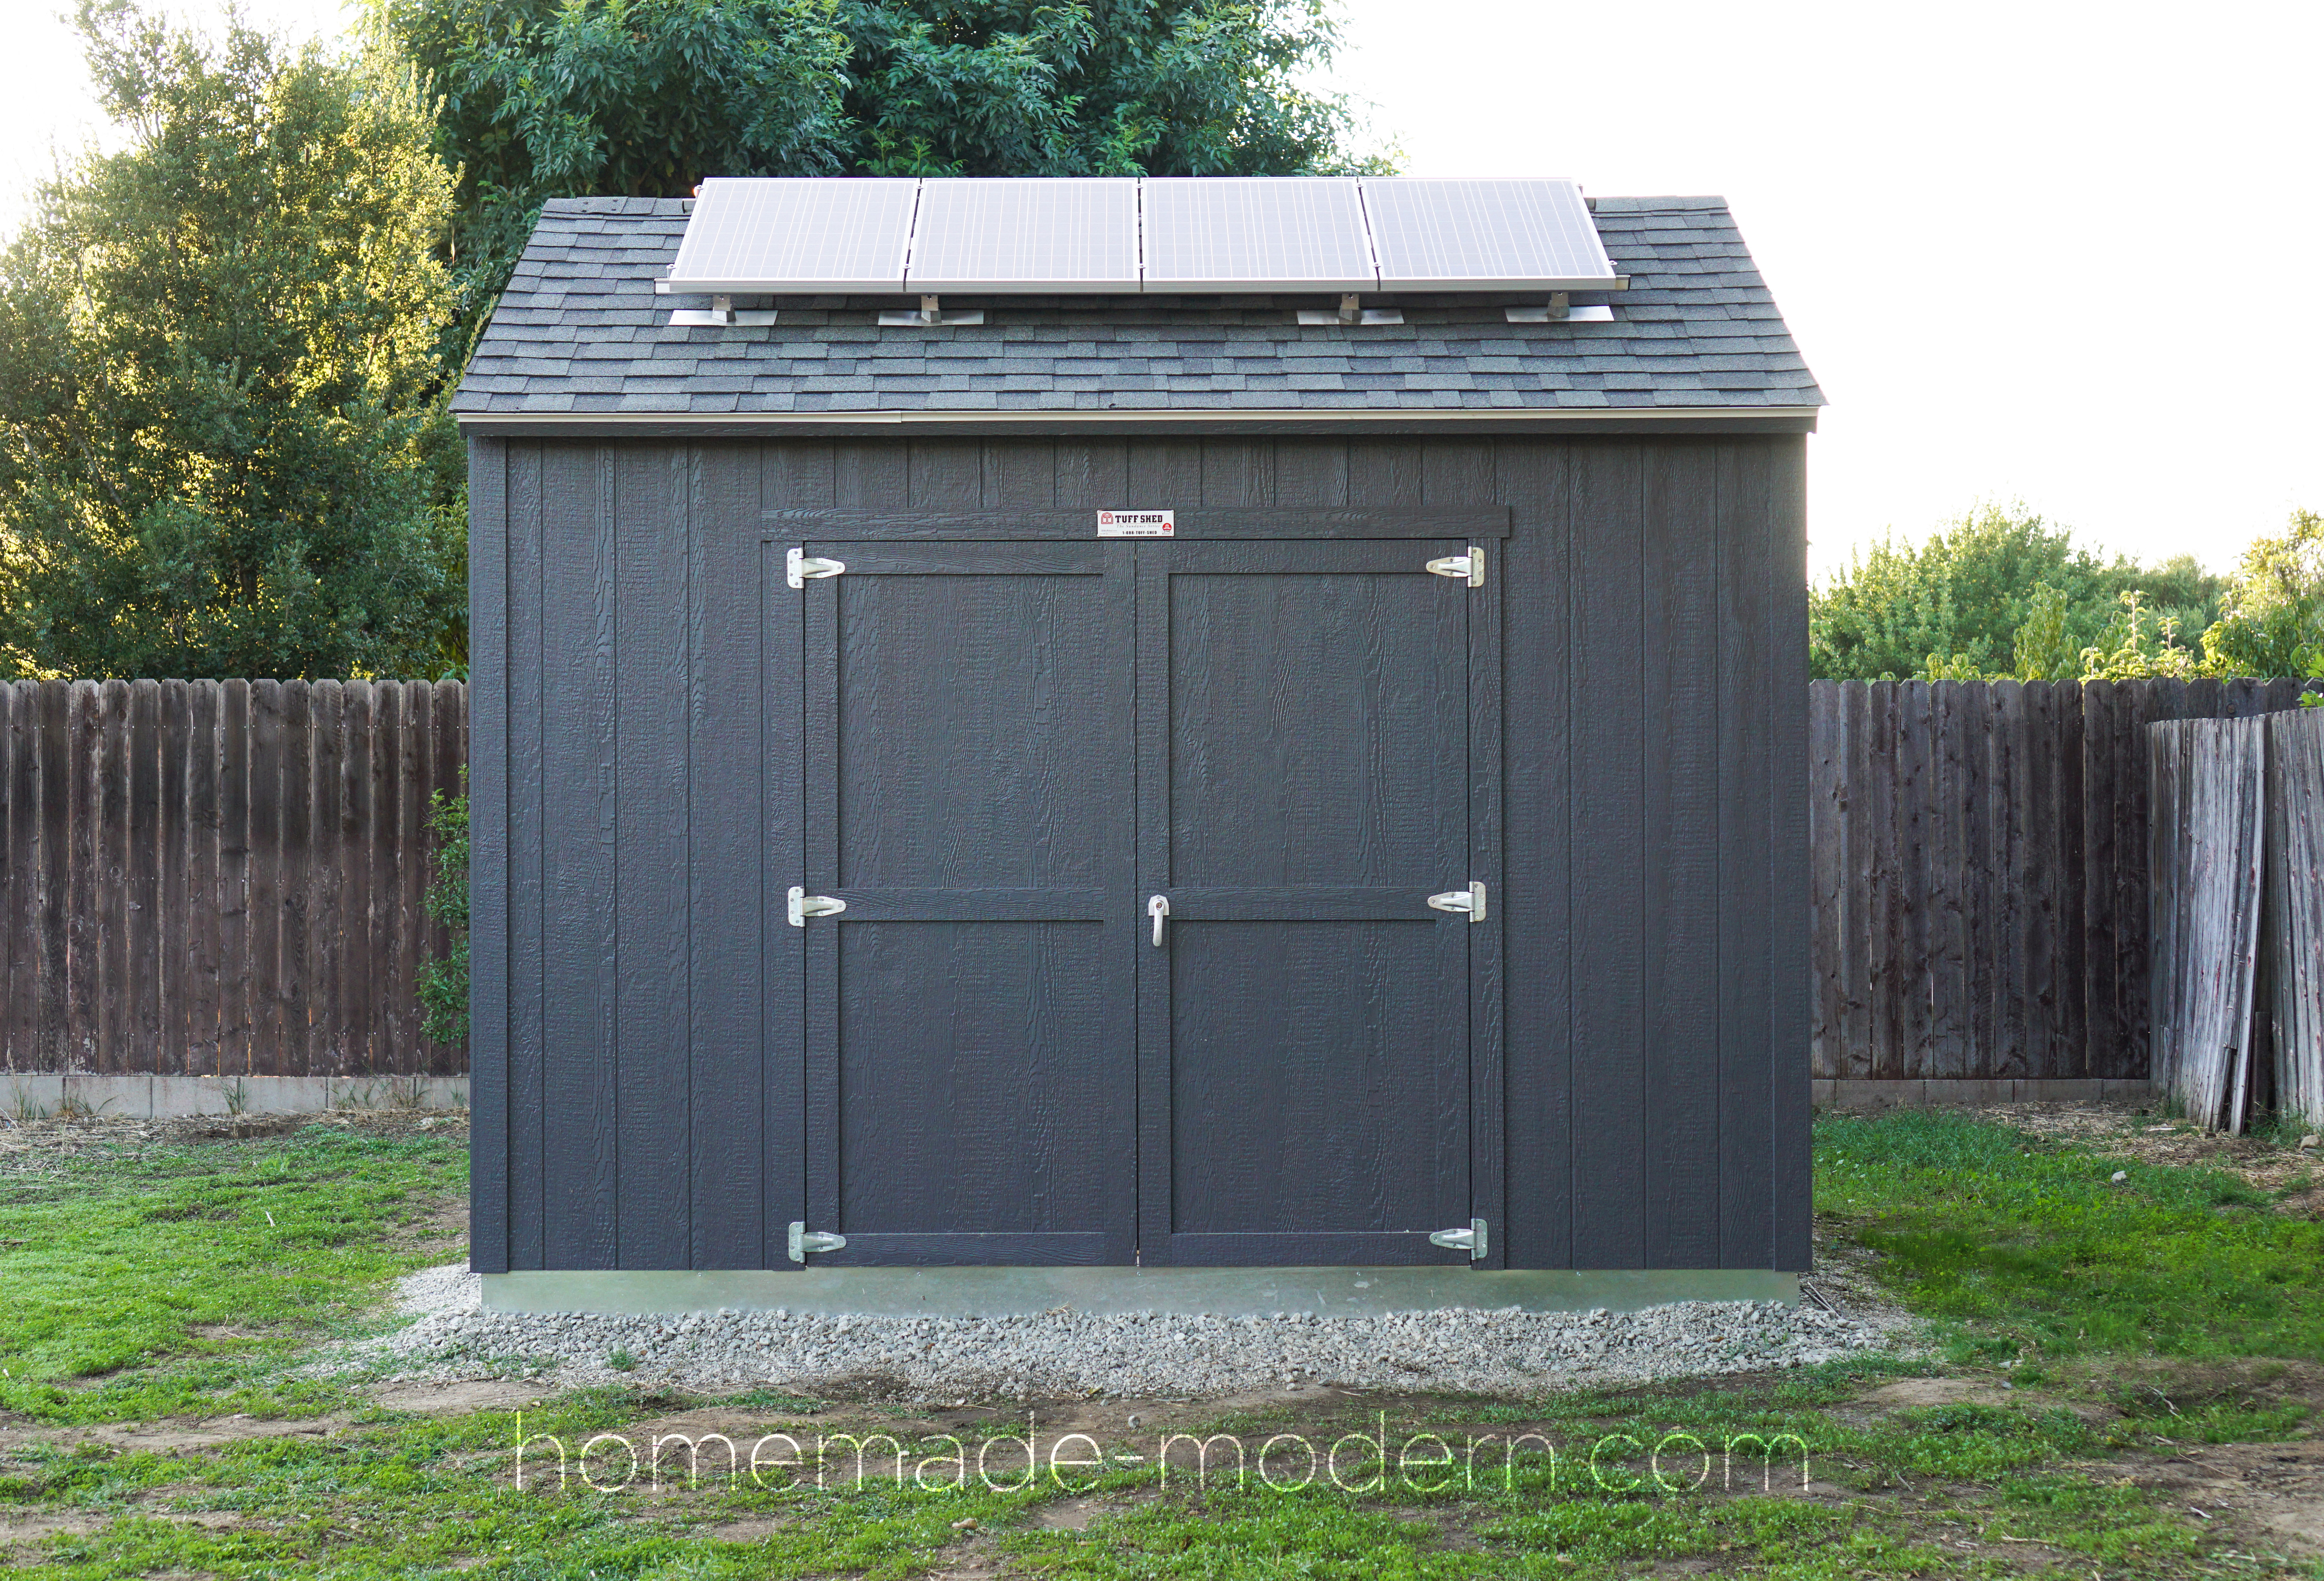 This off-the-grid solar powered workshop was made by retrofitting a prefabricated shed from TuffShed with a 400watt solar kit also from Home Depot. For more information go to HomeMade-Modern.com